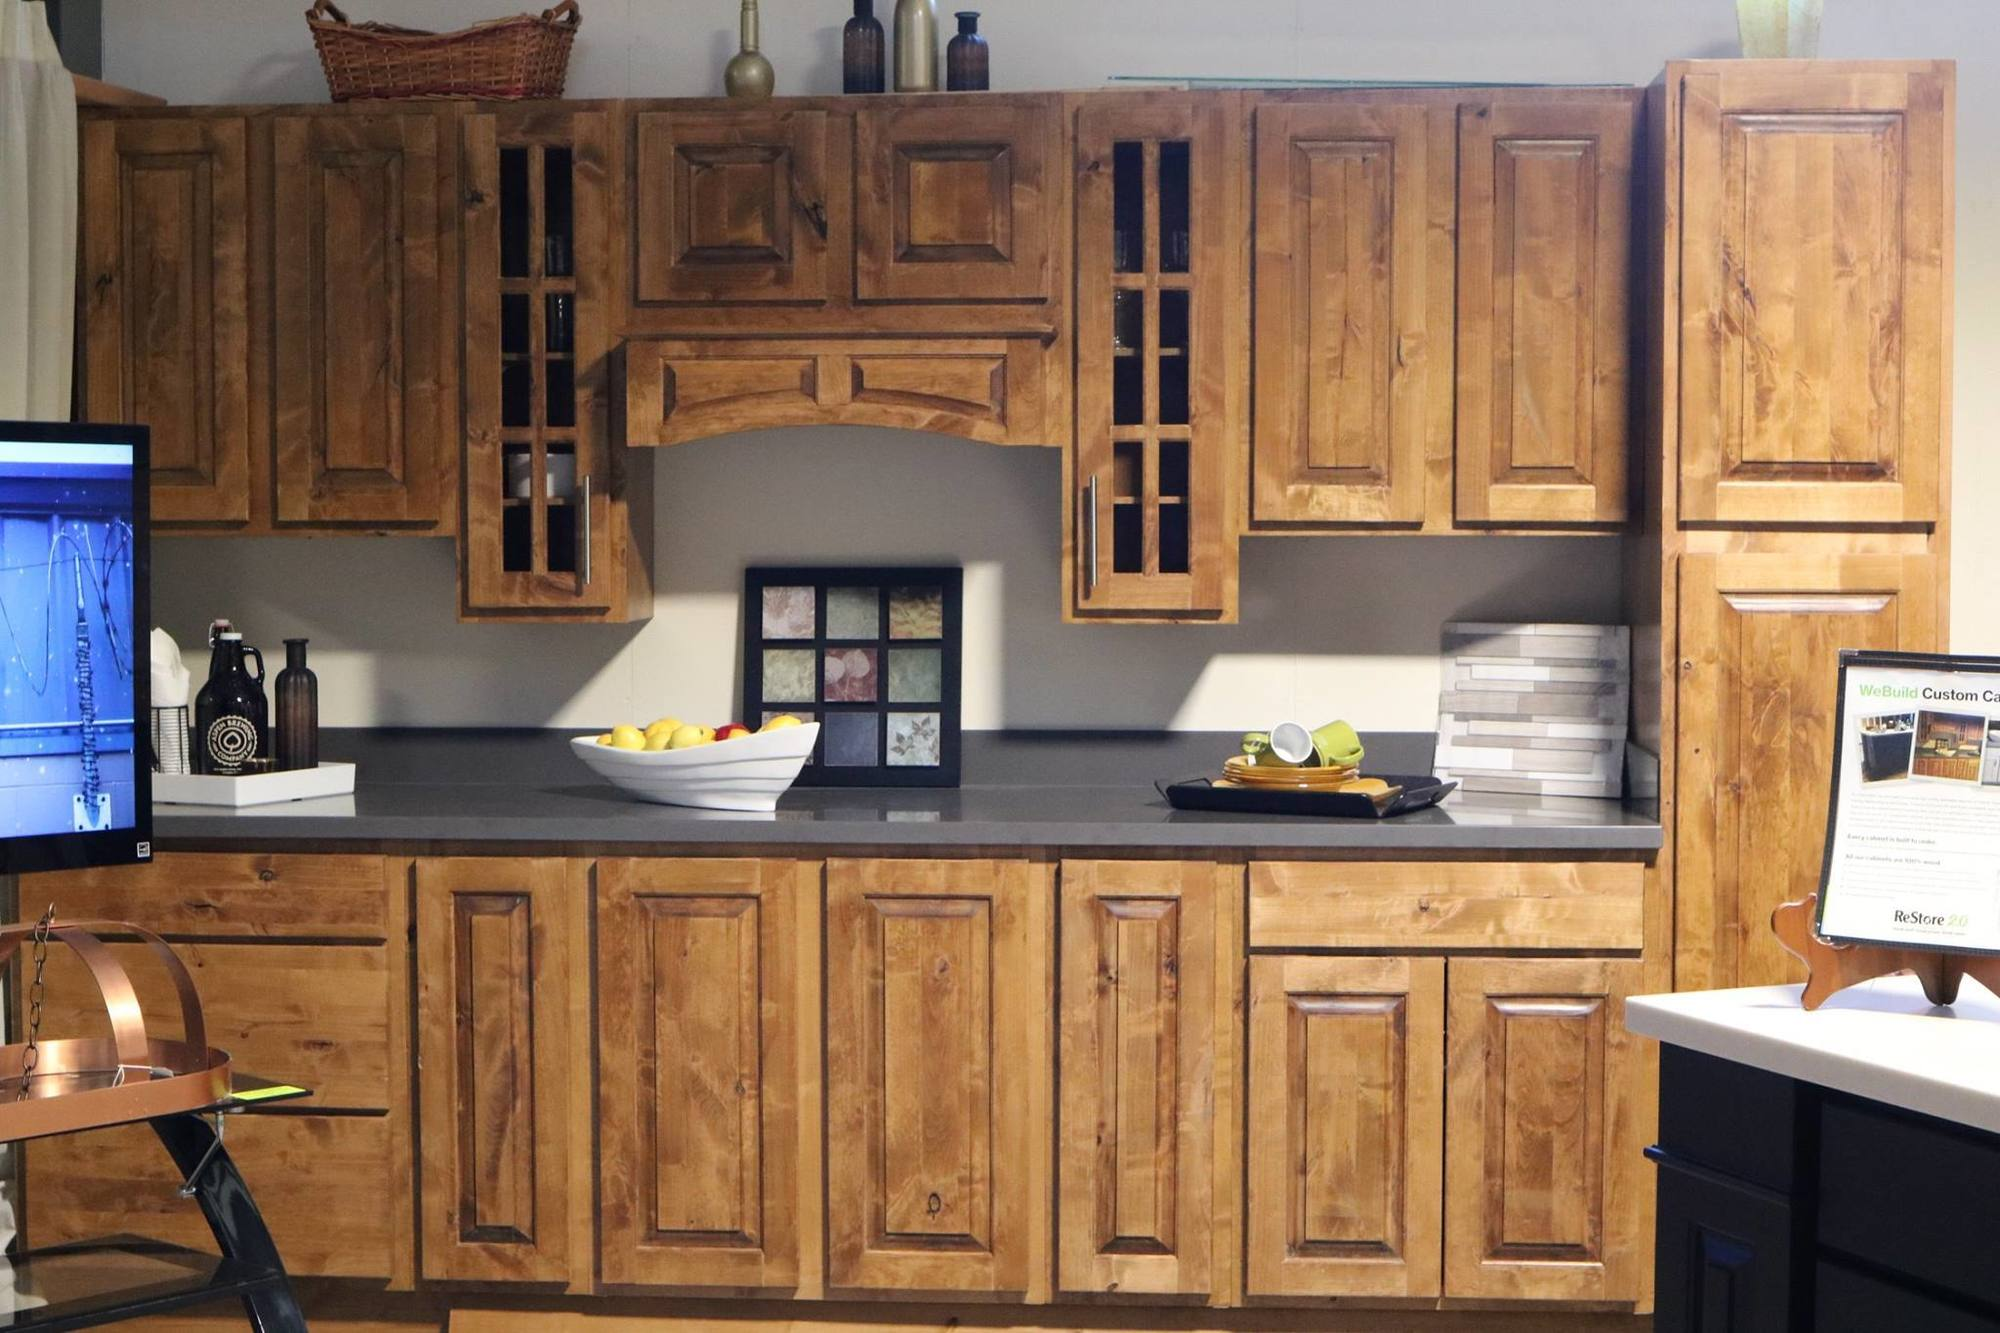 ReStore 2.0 Offers Custom Cabinets Thanks To WeBuild